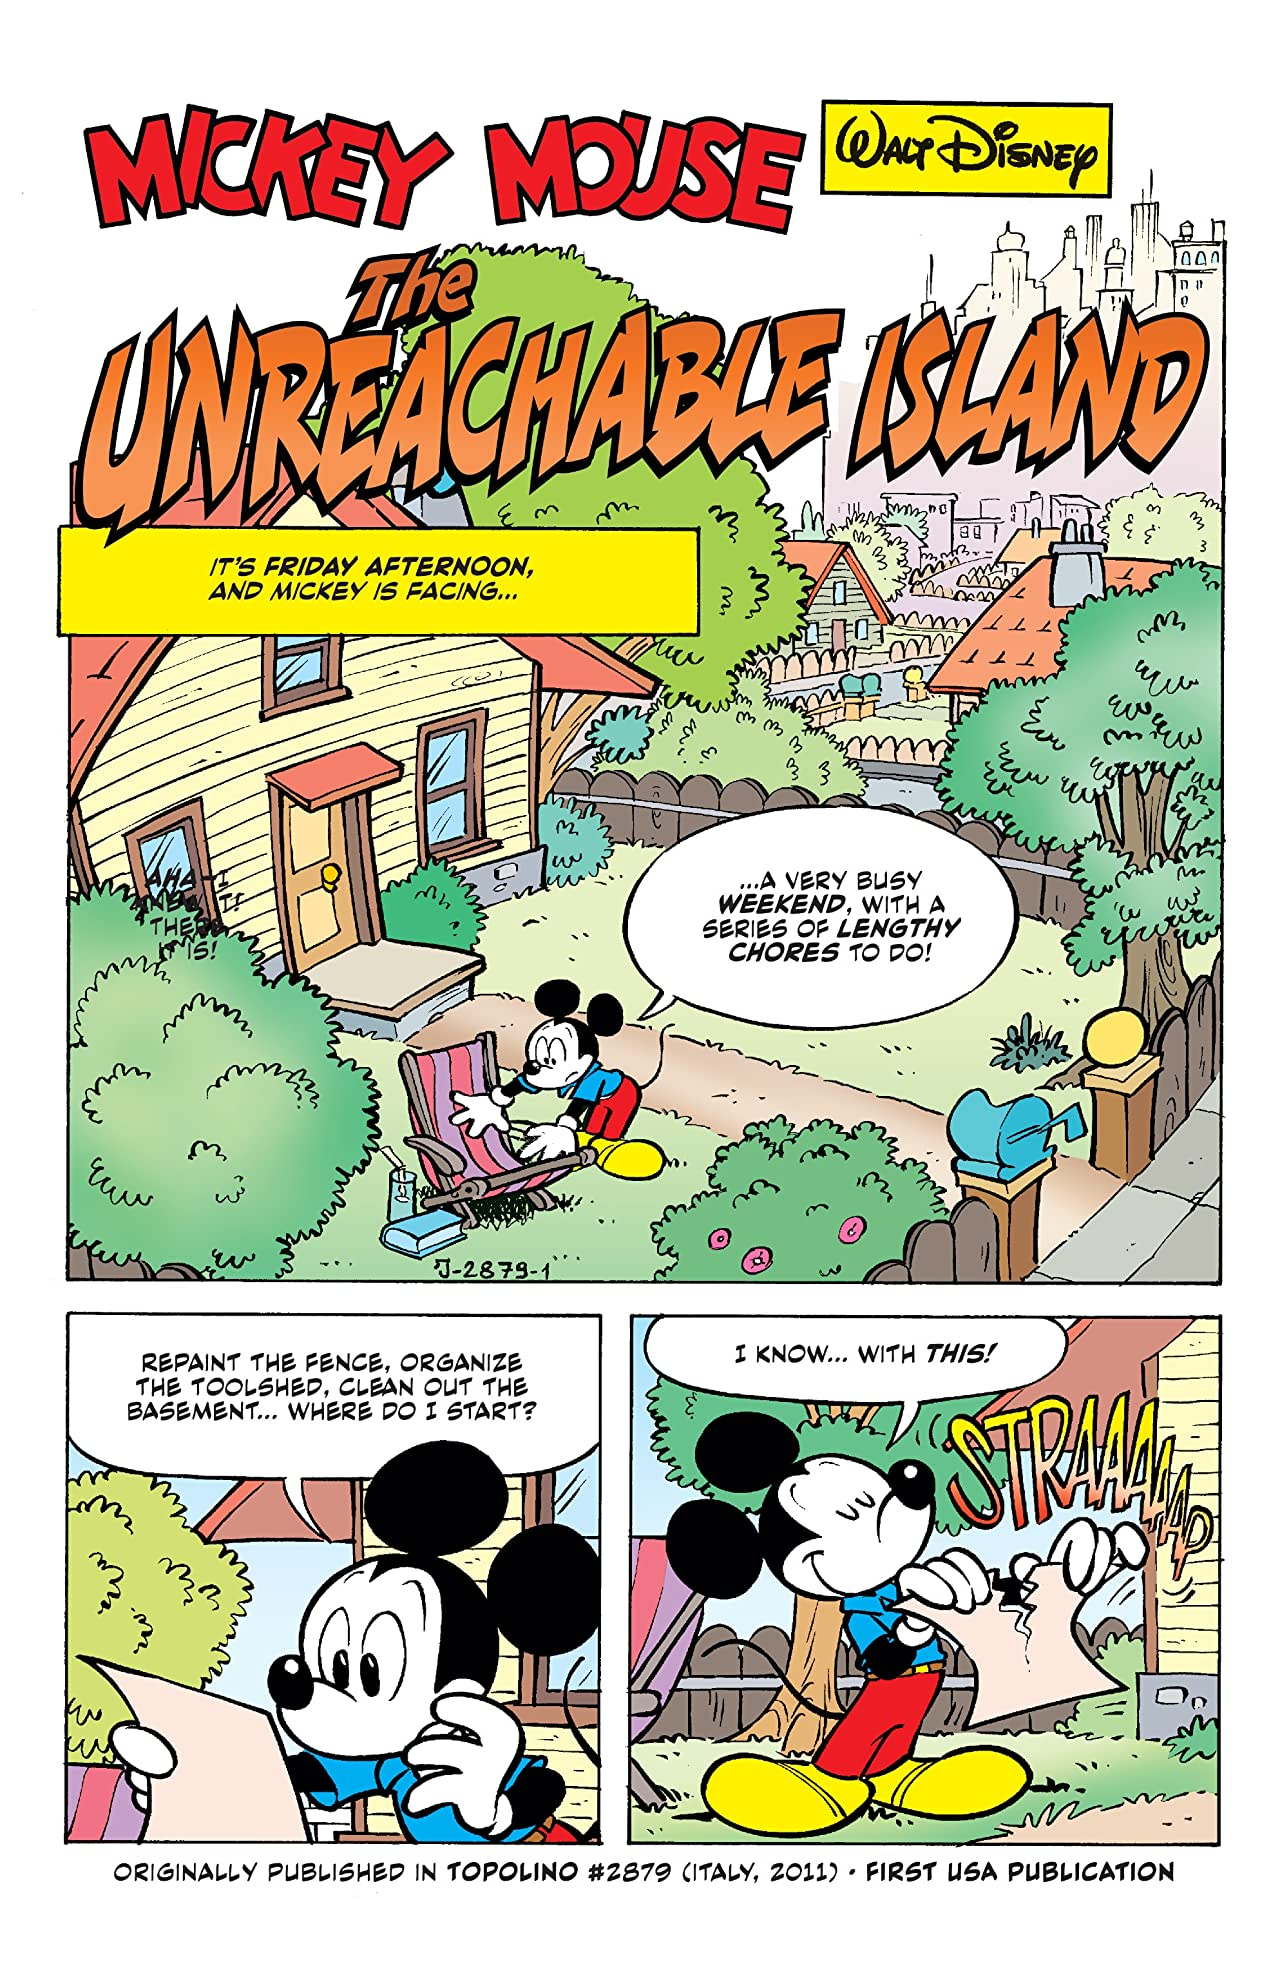 Disney Comics and Stories #4